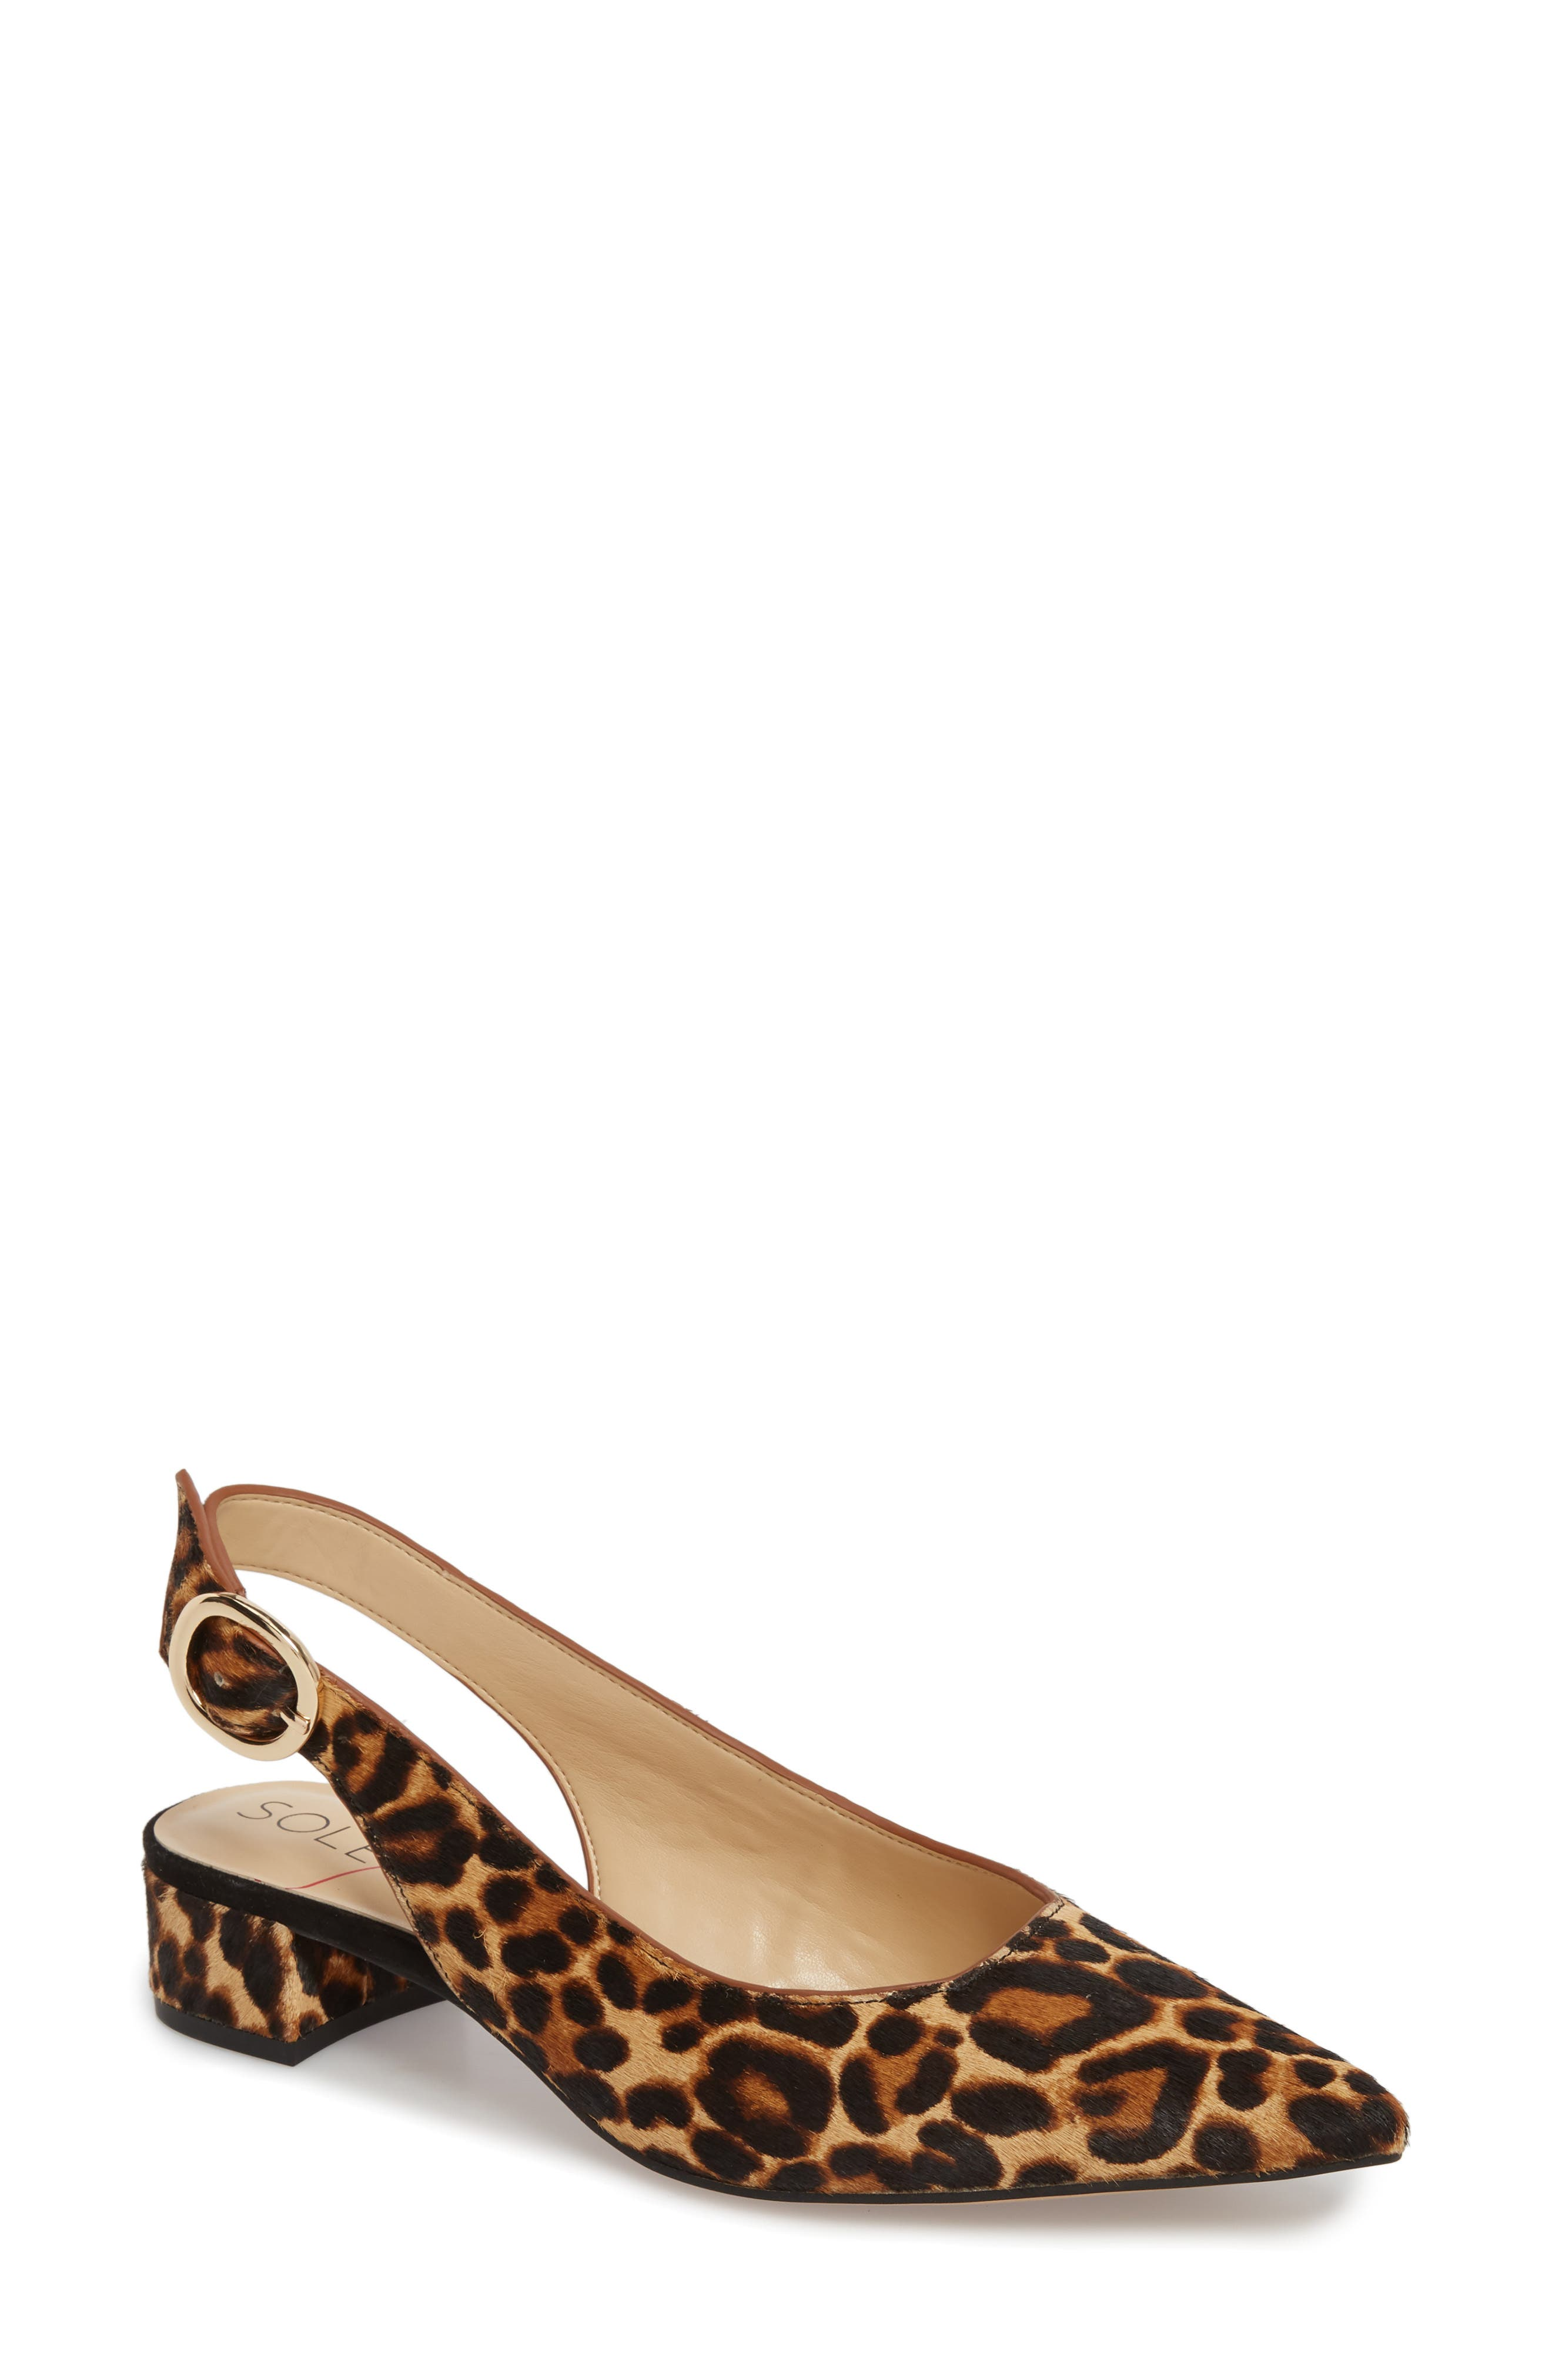 Image of Sole Society Mariol Slingback Pump